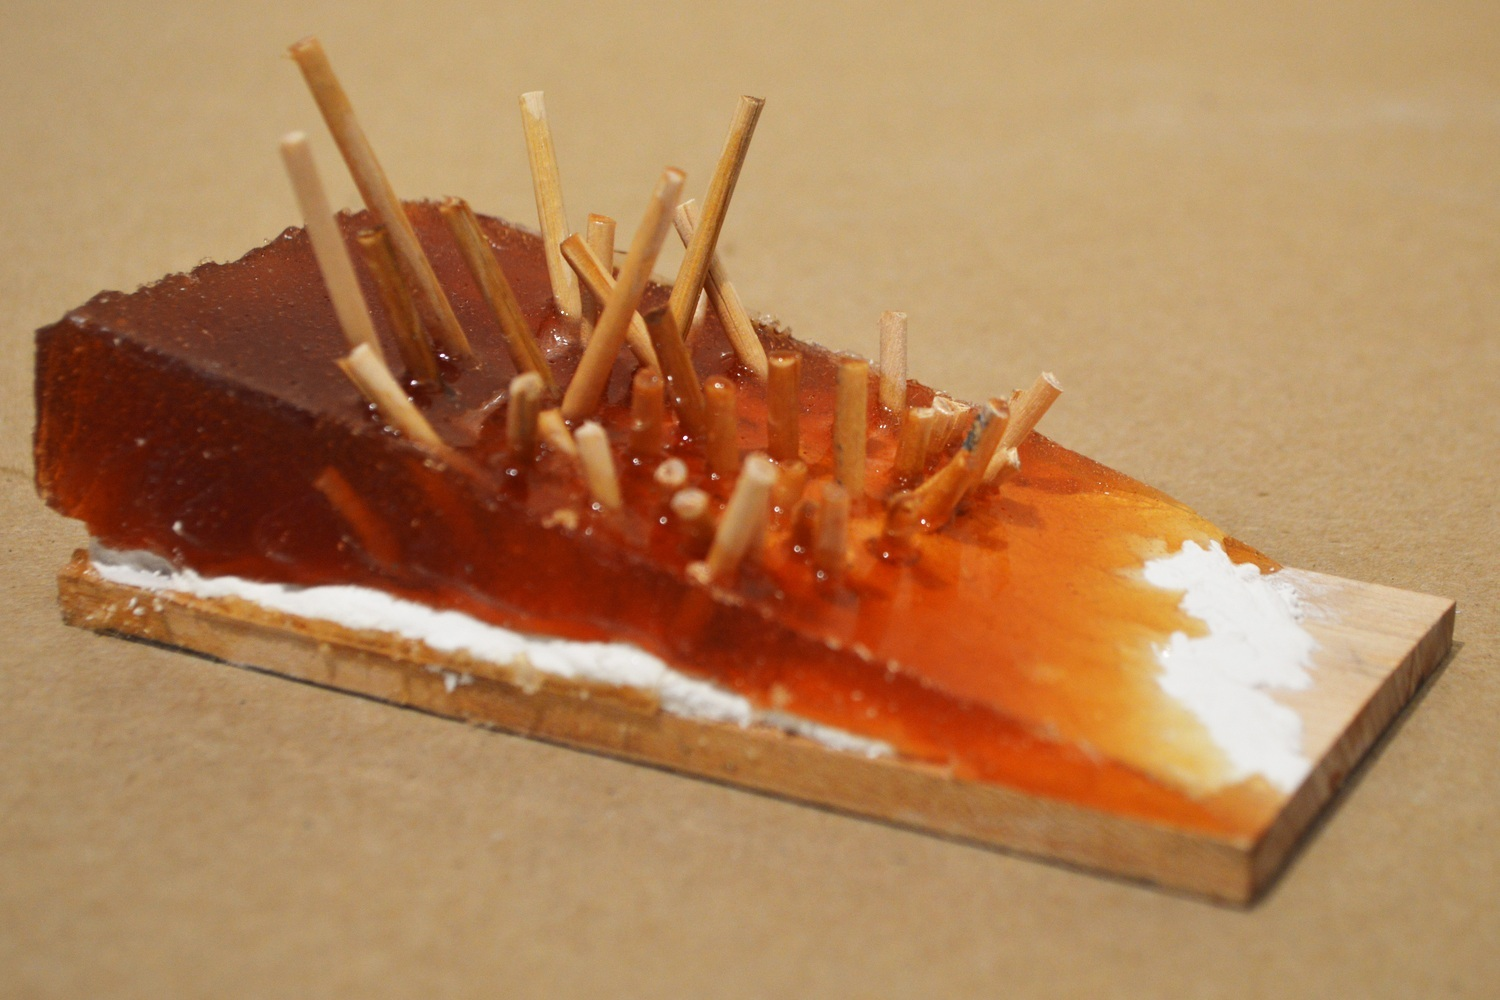 Maple wood, plaster, liquid silicone rubber, wooden dowels.